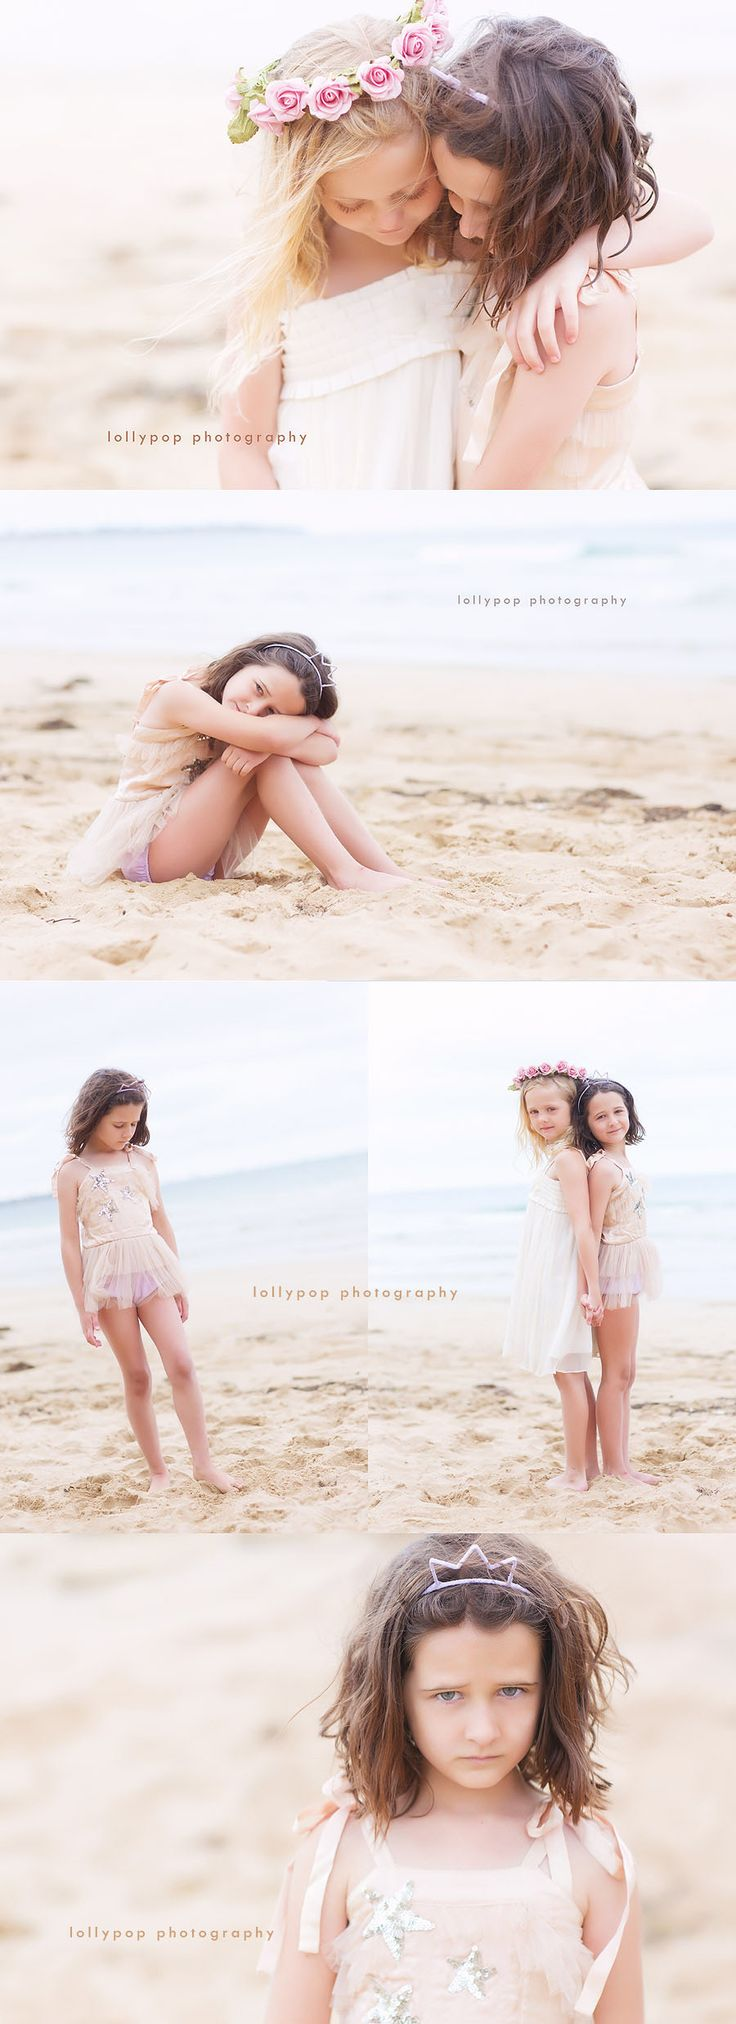 Beach photography - soft neutrals never go out of style - what-to-wear